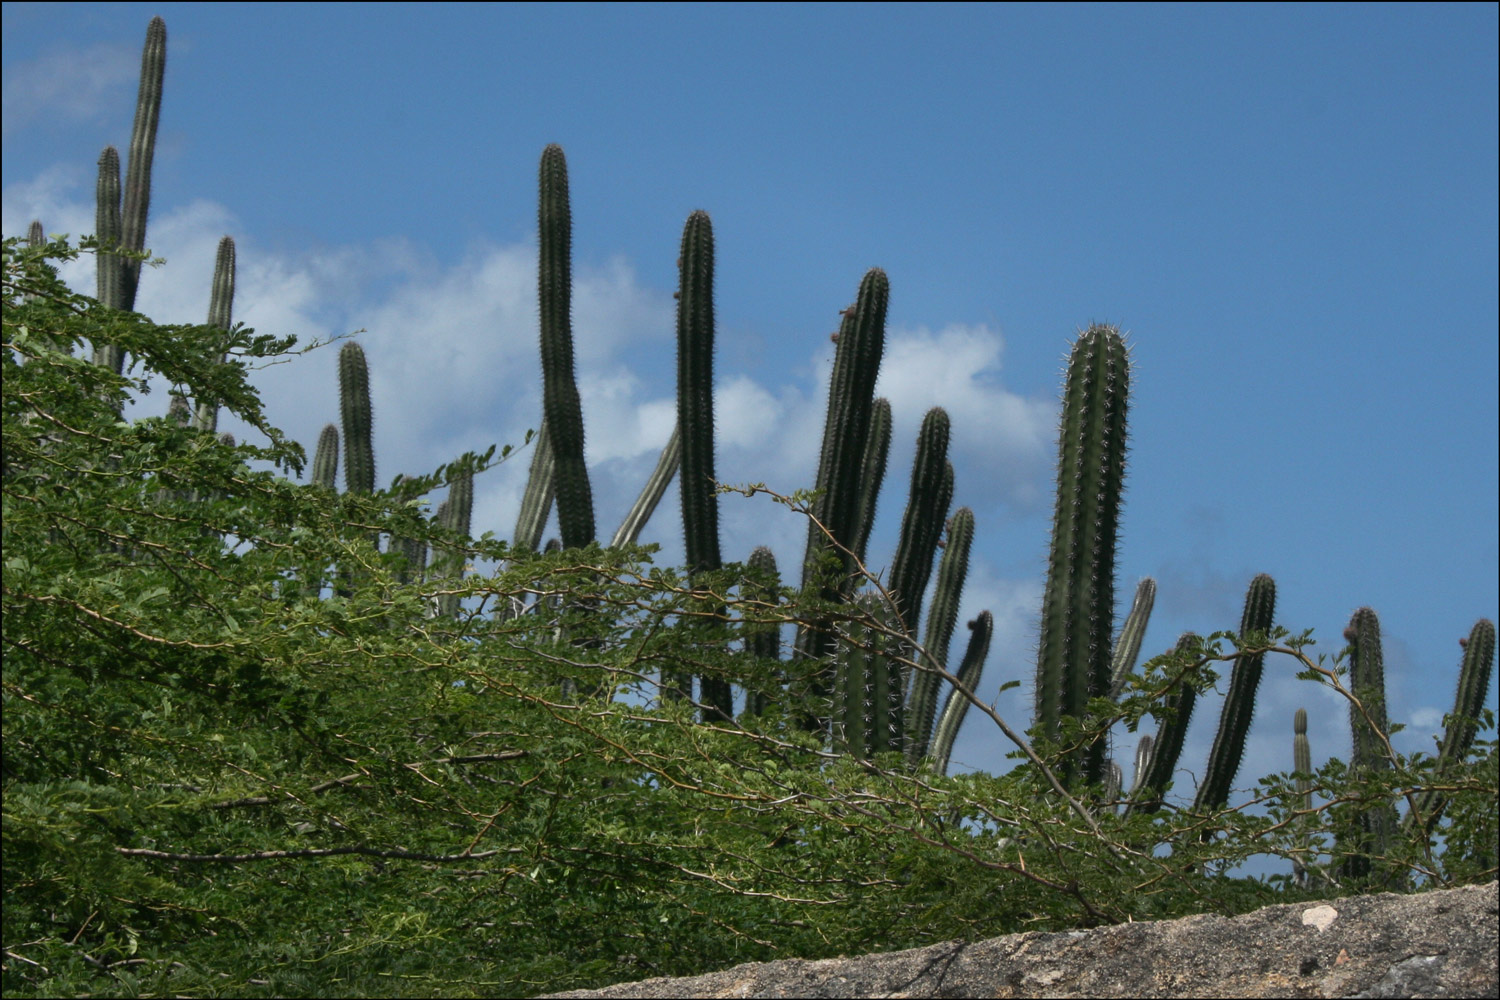 Acacia and Cactus